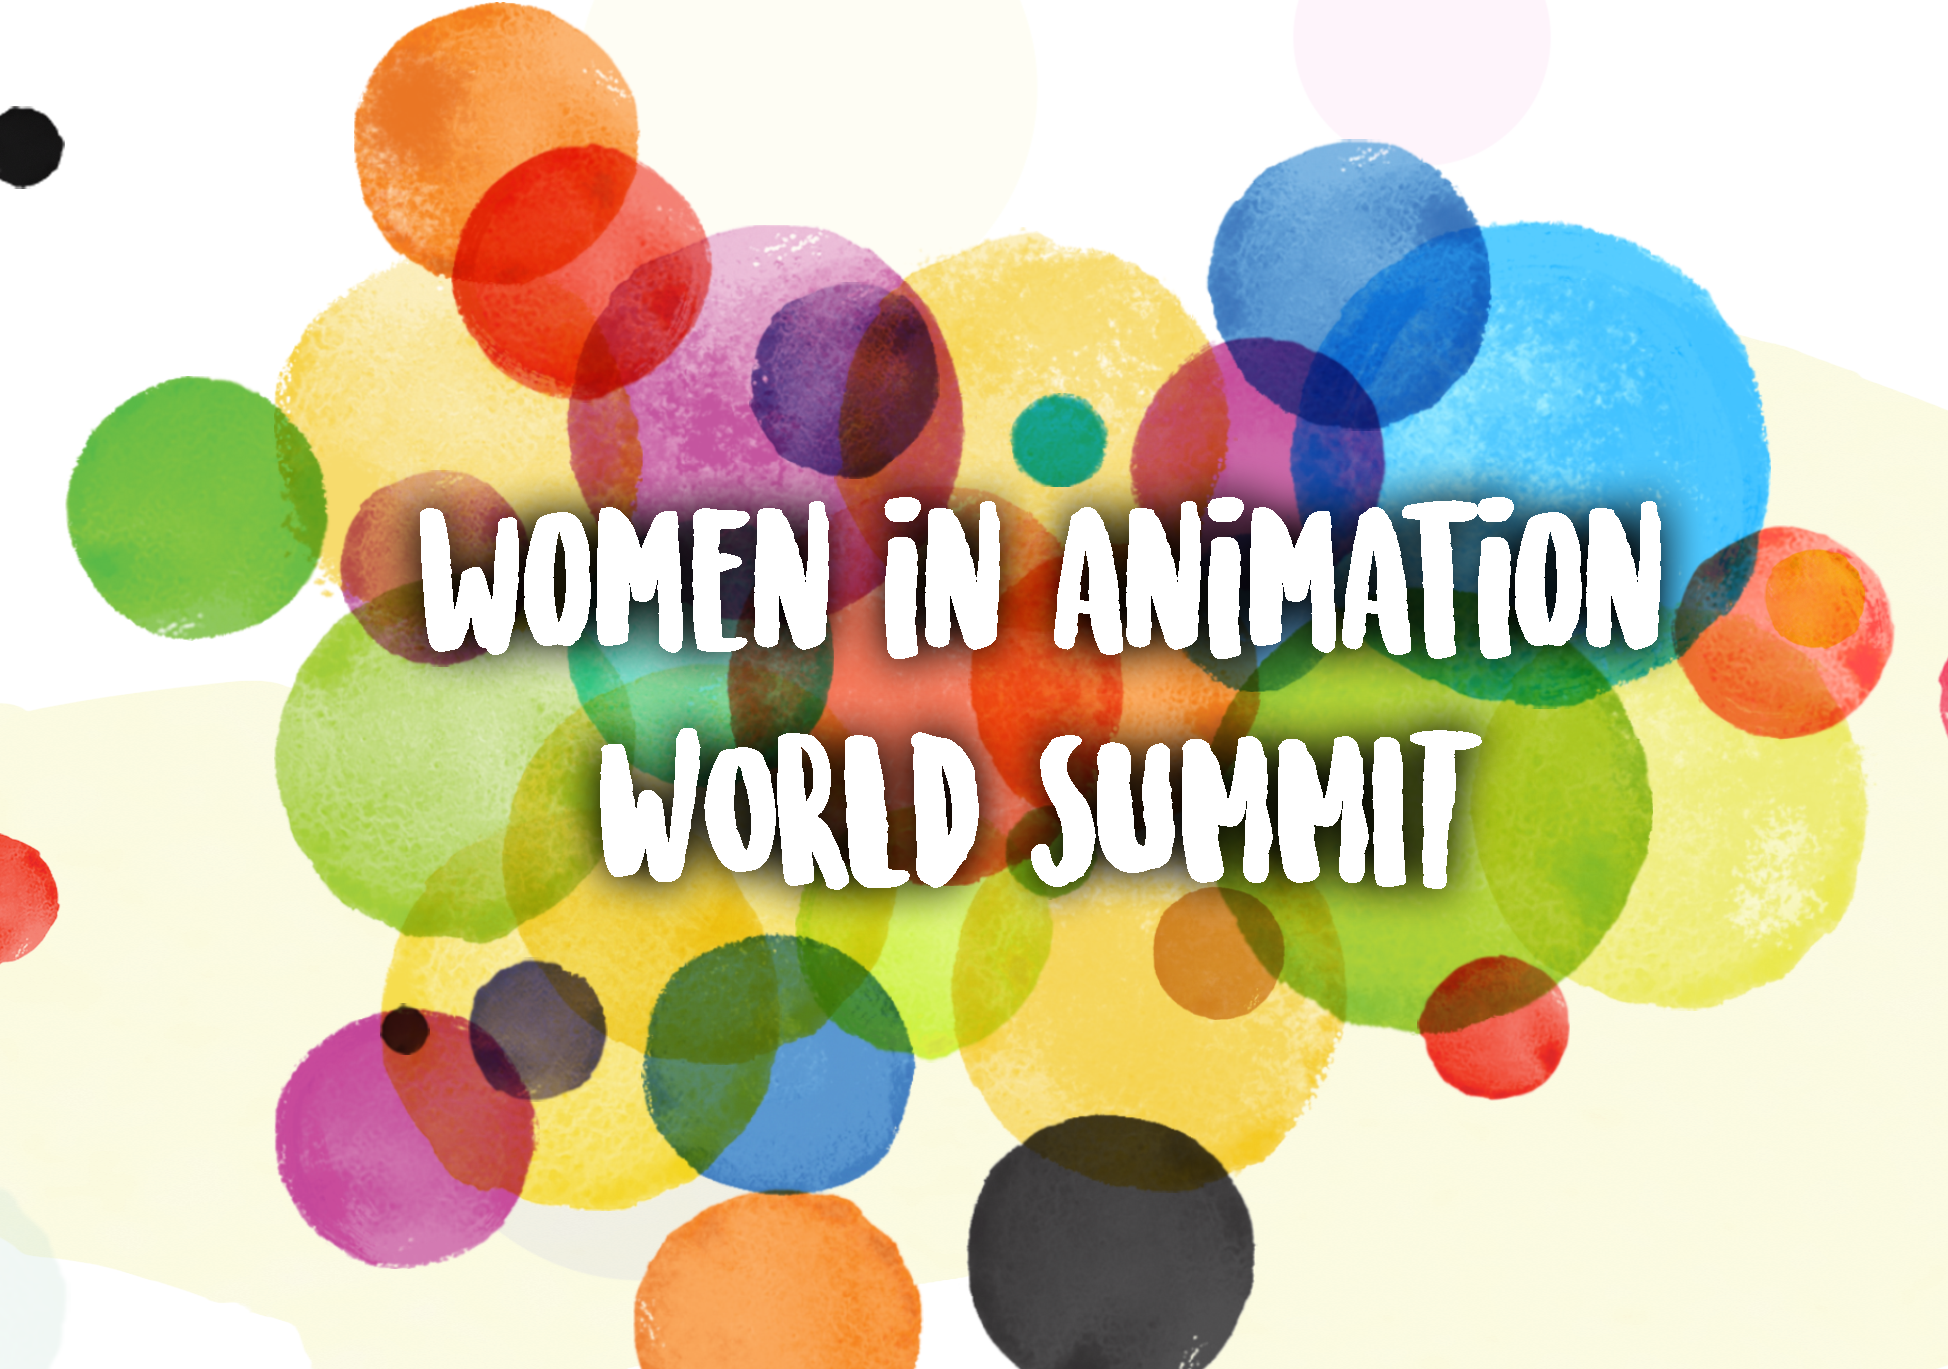 Women in Animation World Summit logo